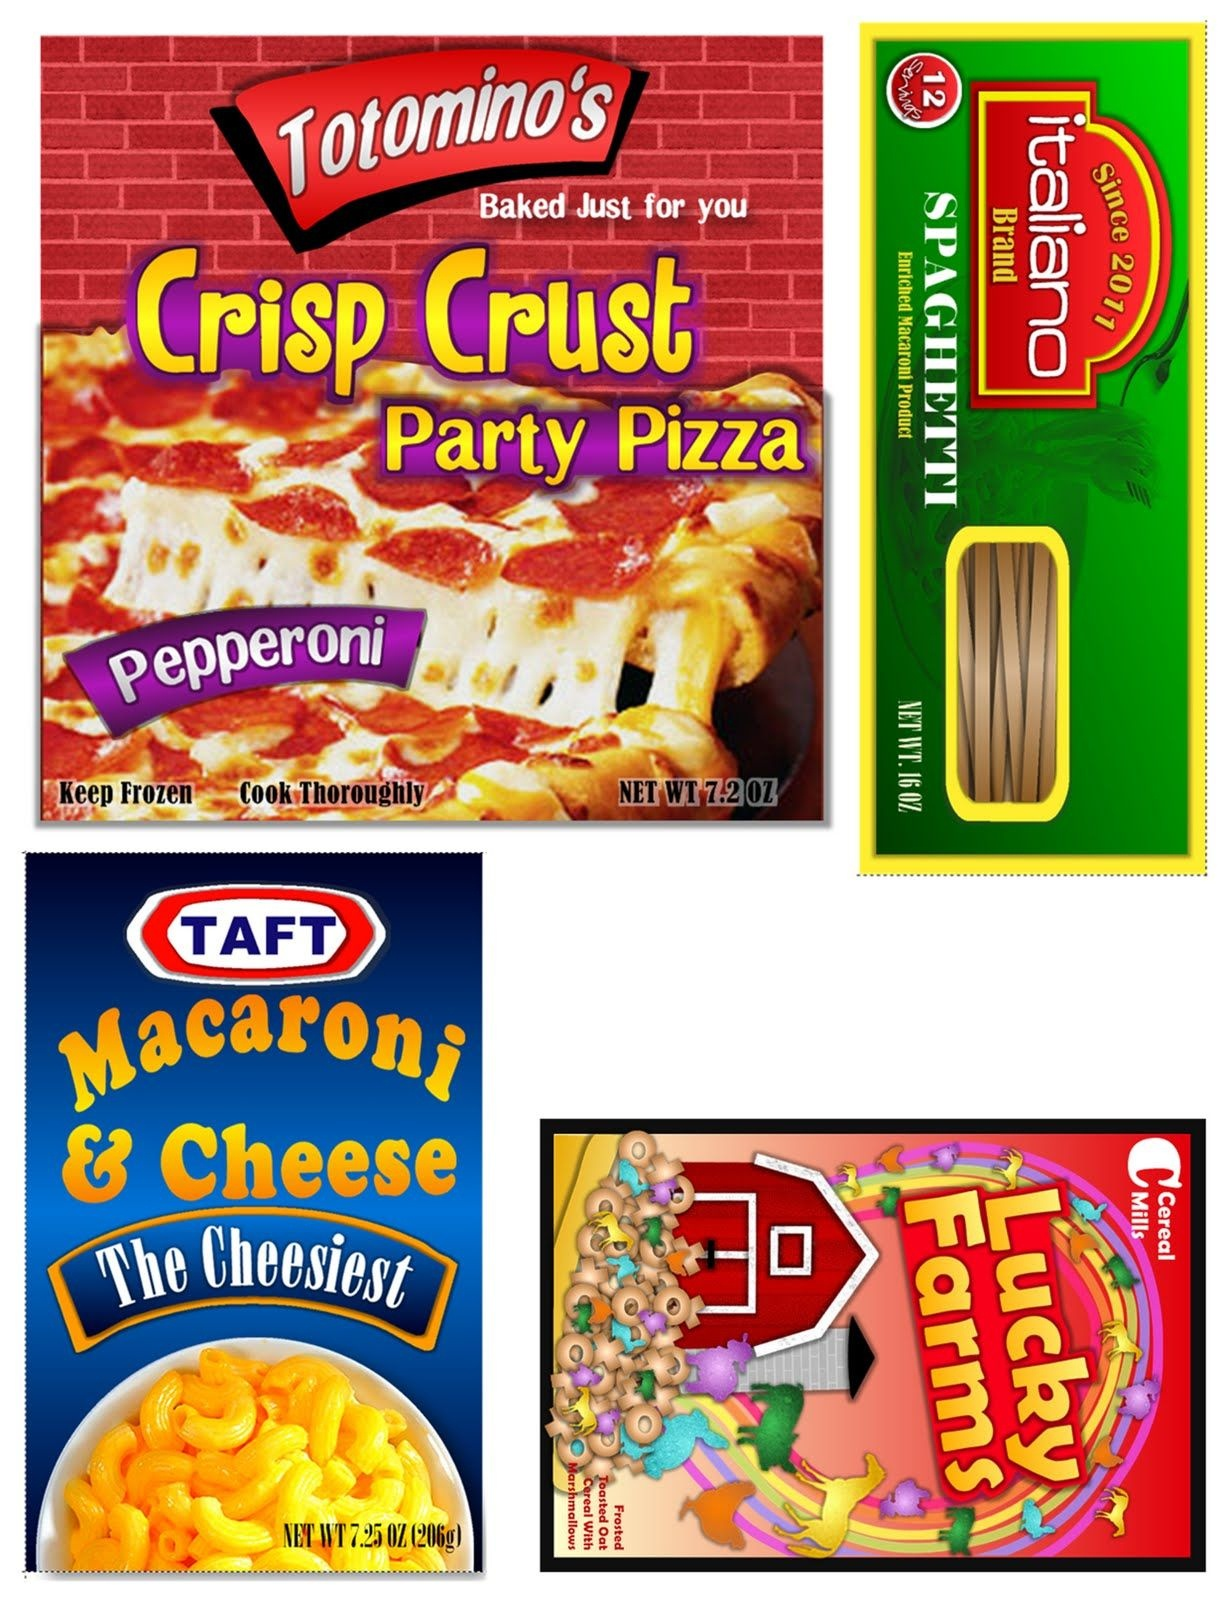 Free Download Of Kiddie Food Play Labels - The Sew*er, The Caker - Free Printable Play Food Labels